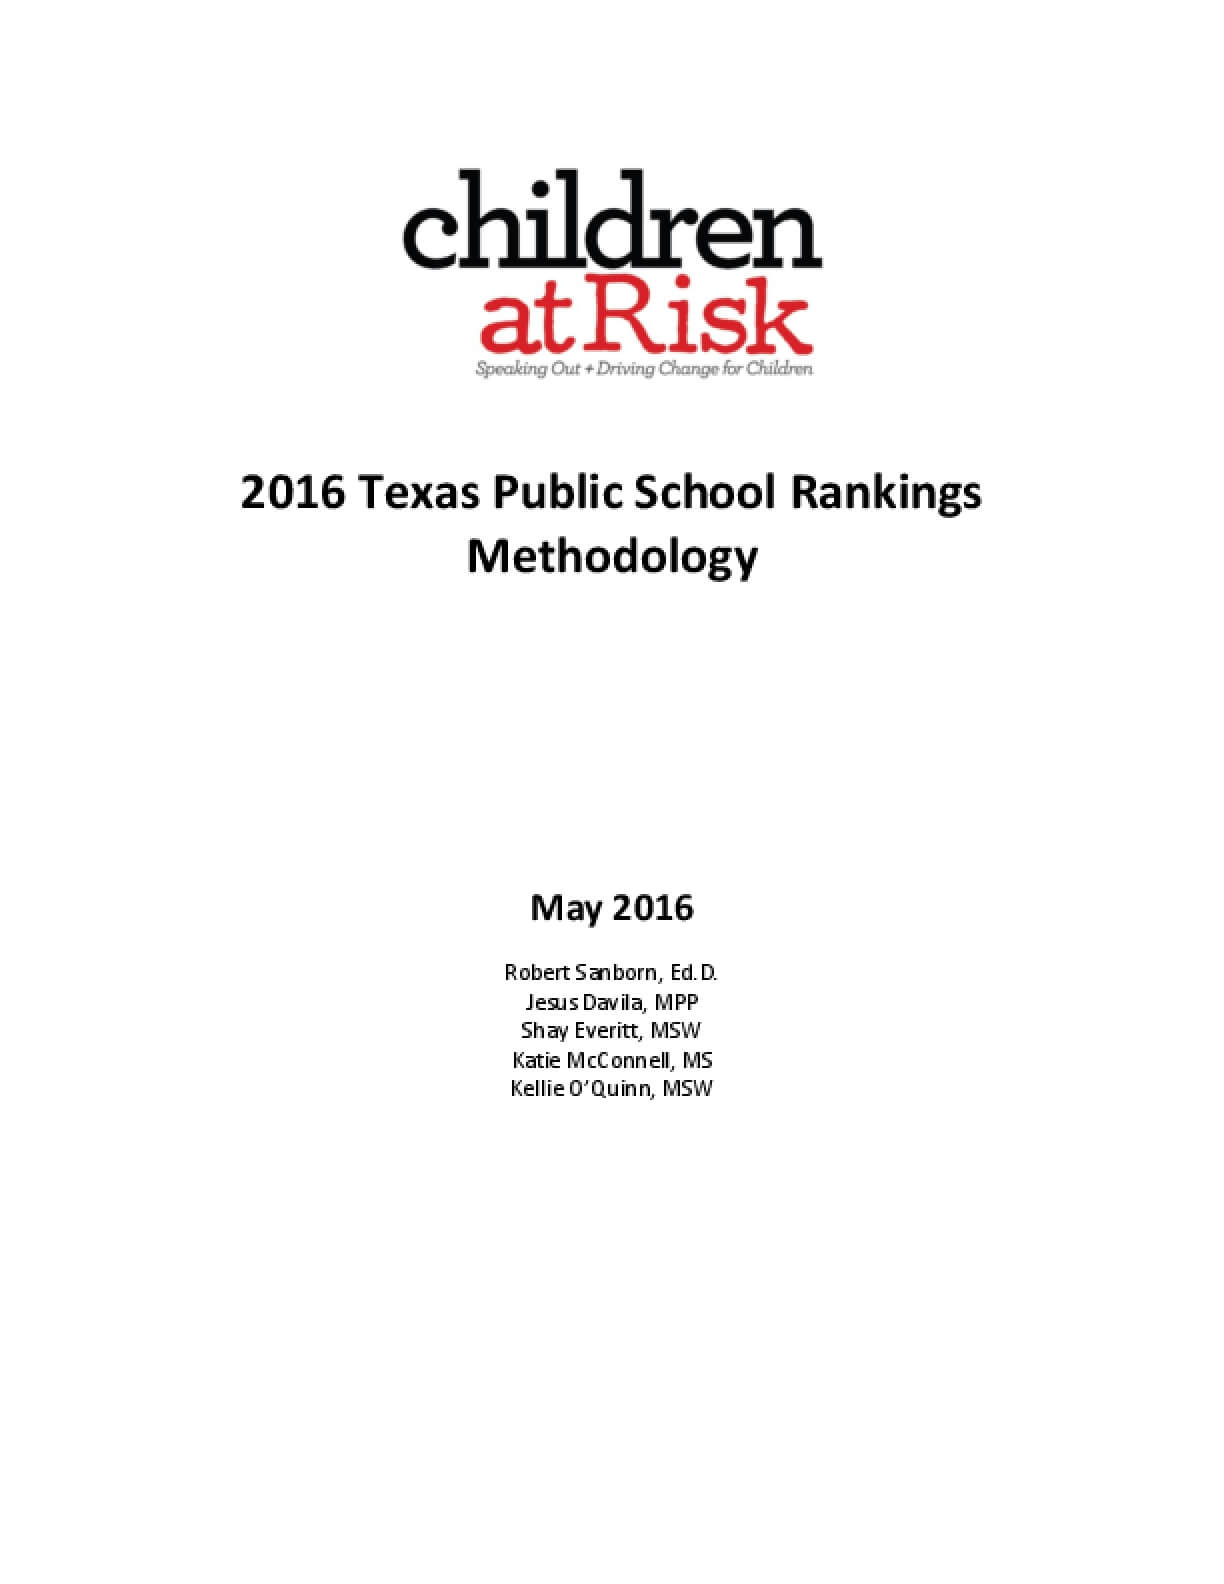 2016 Texas Public School Rankings Methodology